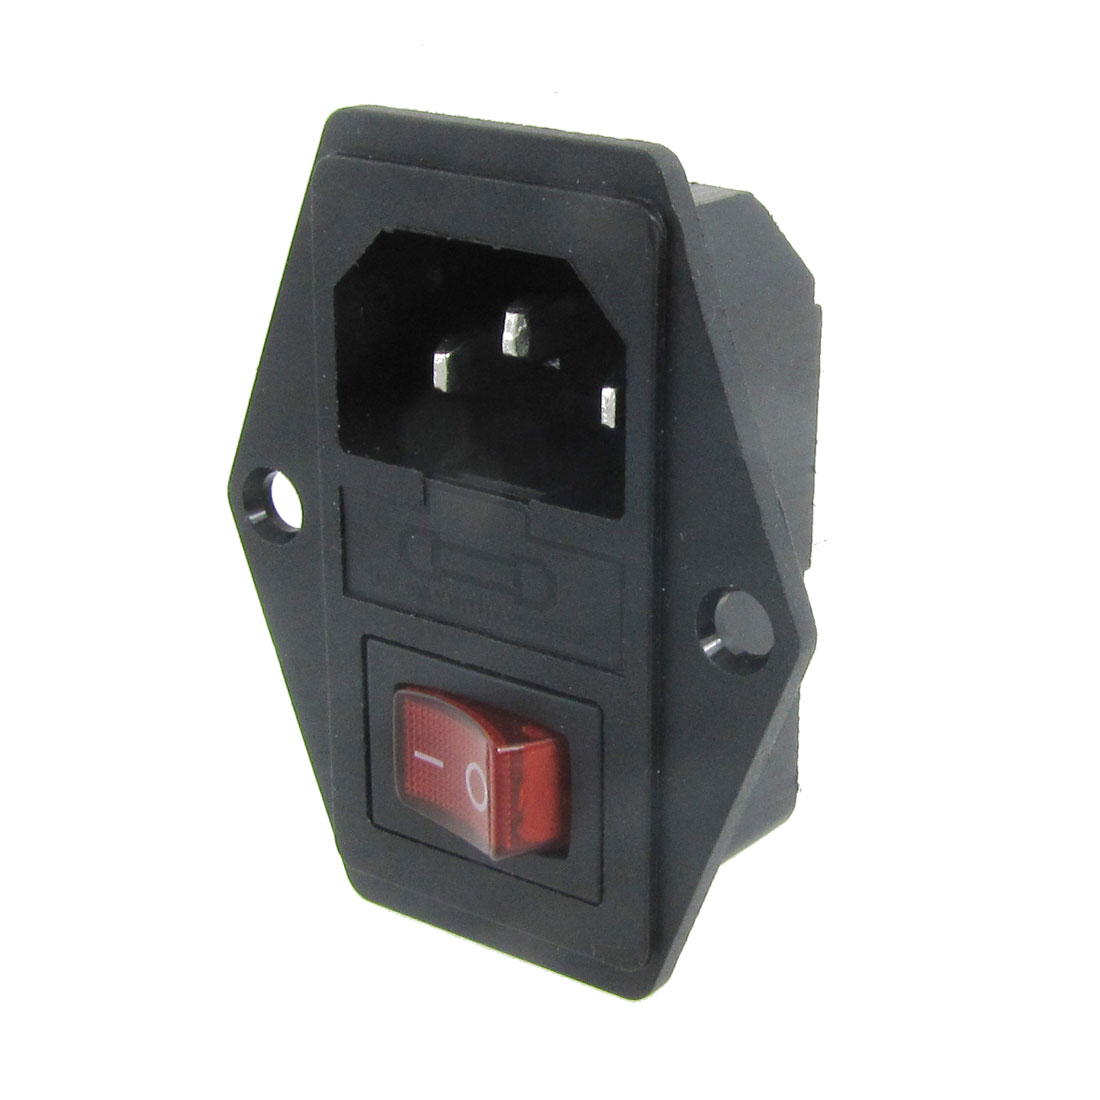 6A 250V AC Rocker Switch 3 Pole IEC320 C14 Inlet Module Fuse